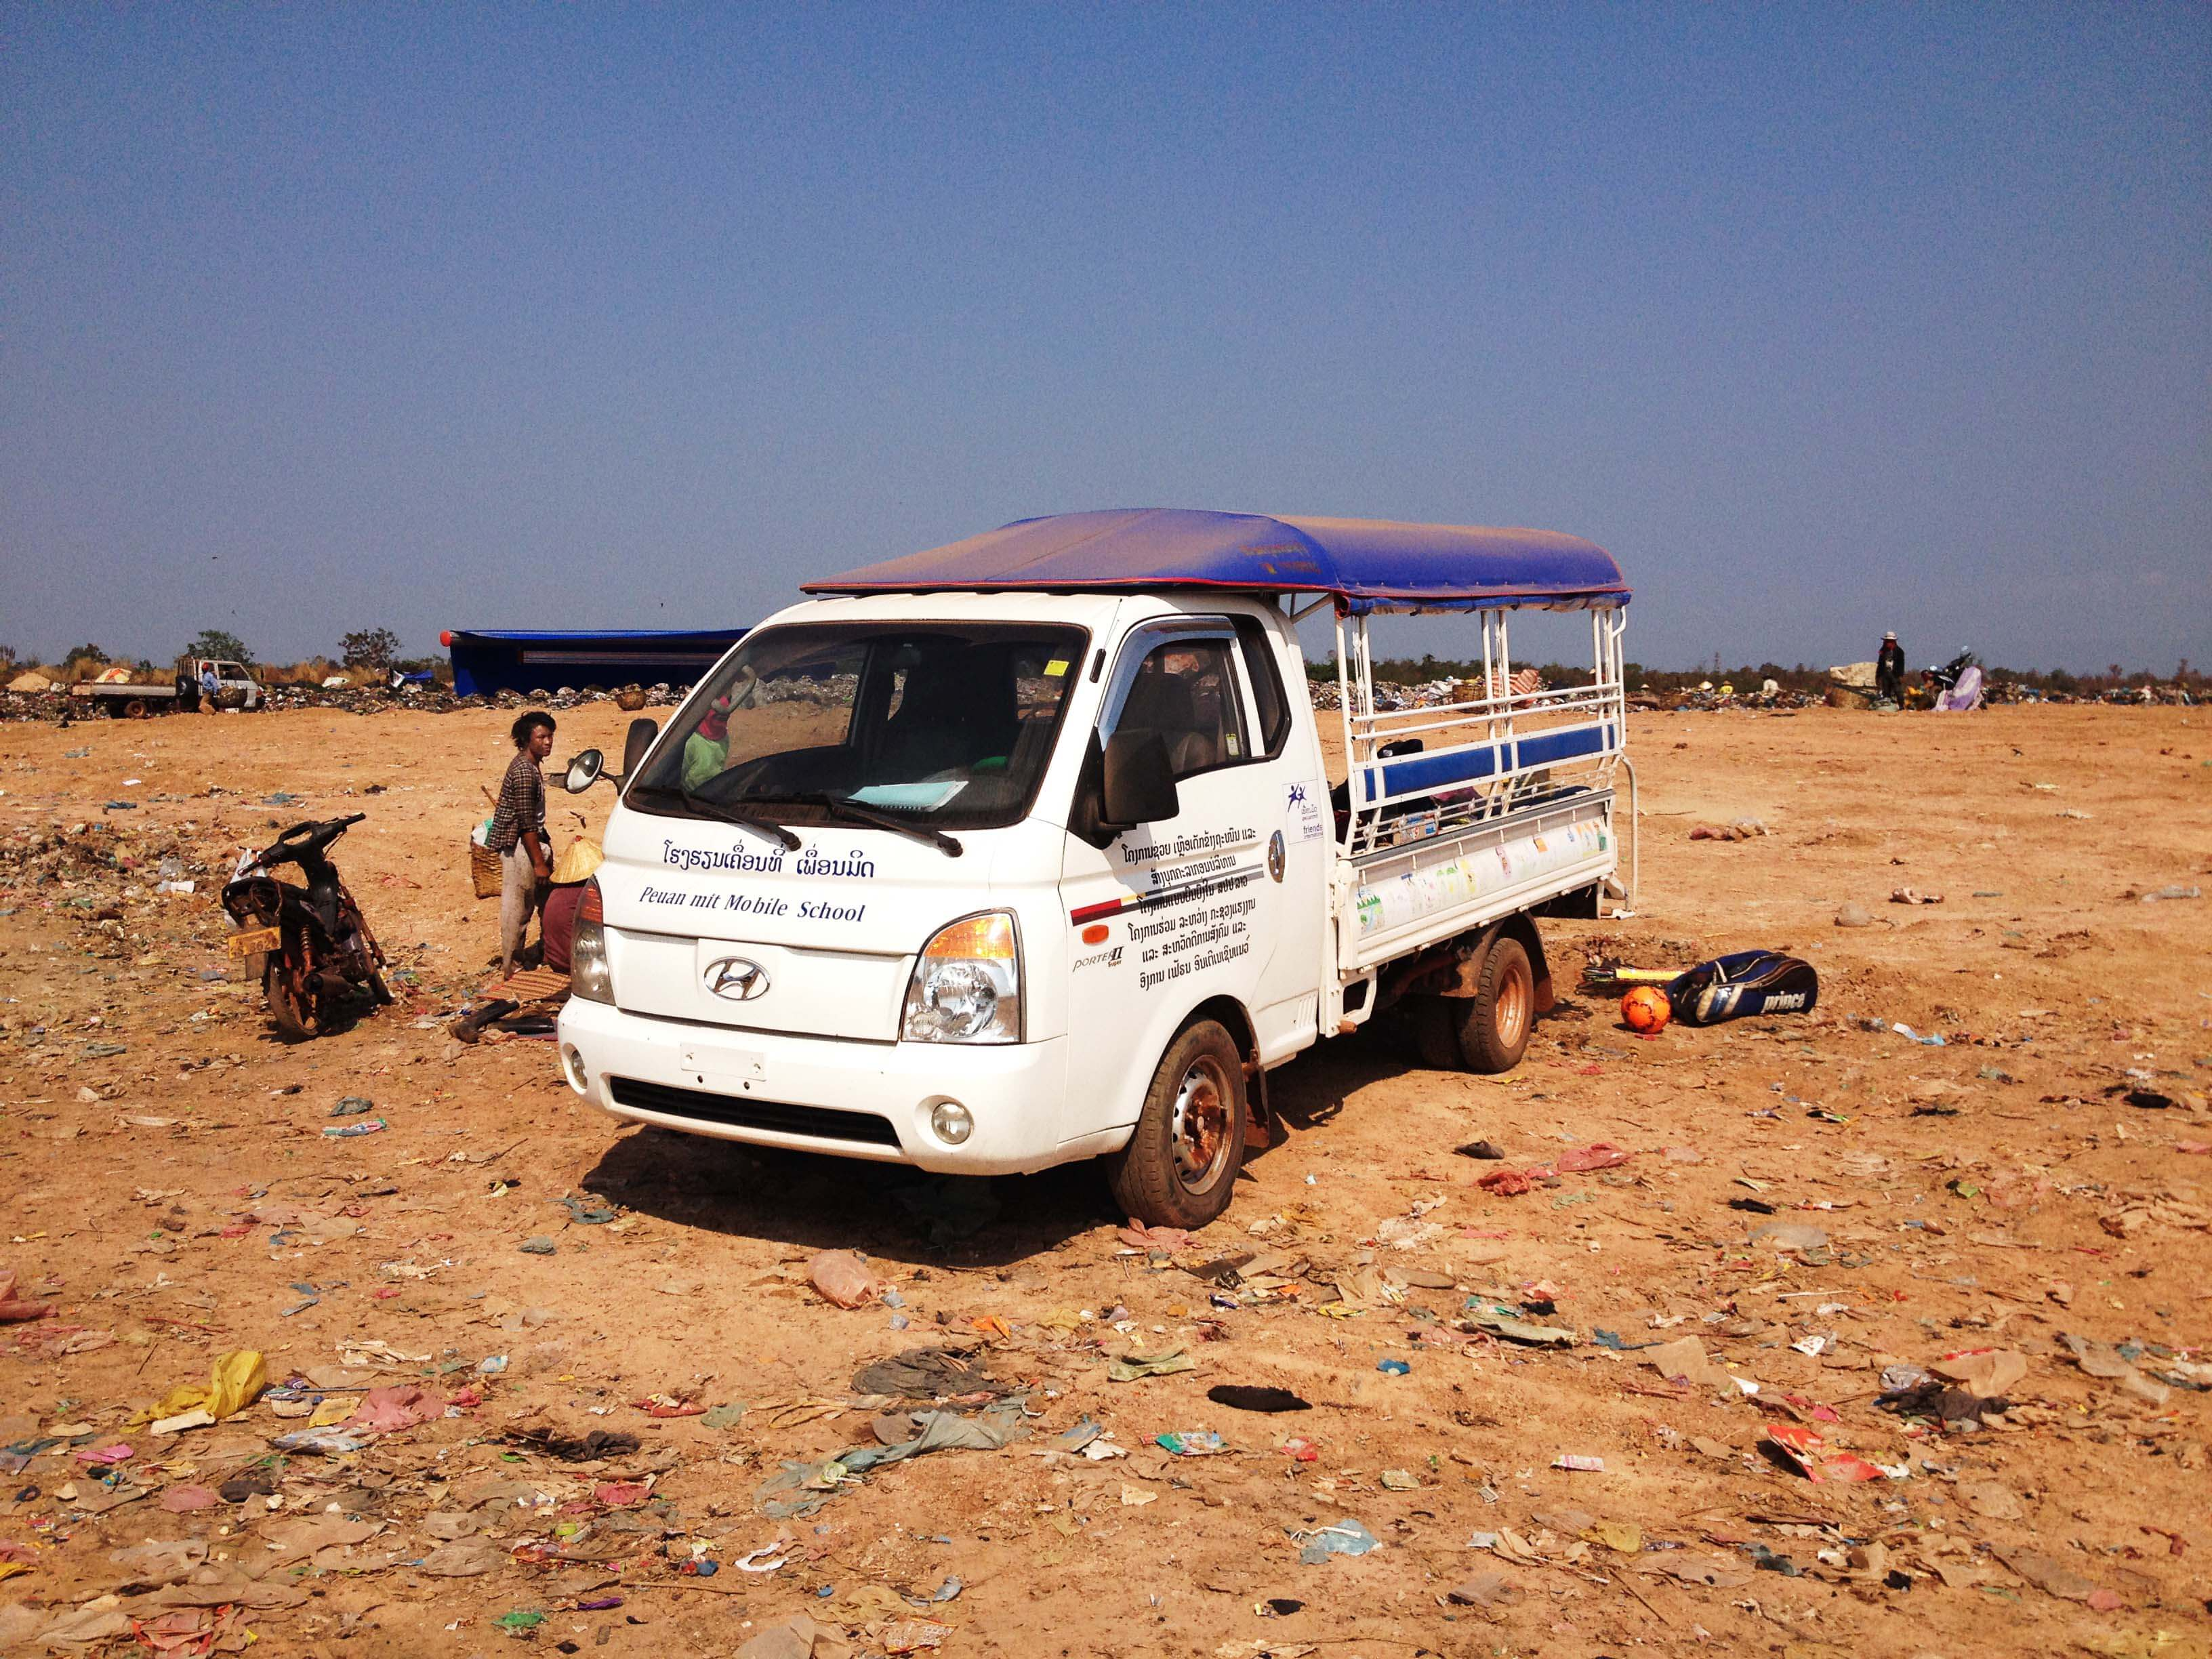 The new mobile learning centre arrives onsite at the KM36 rubbish dump.